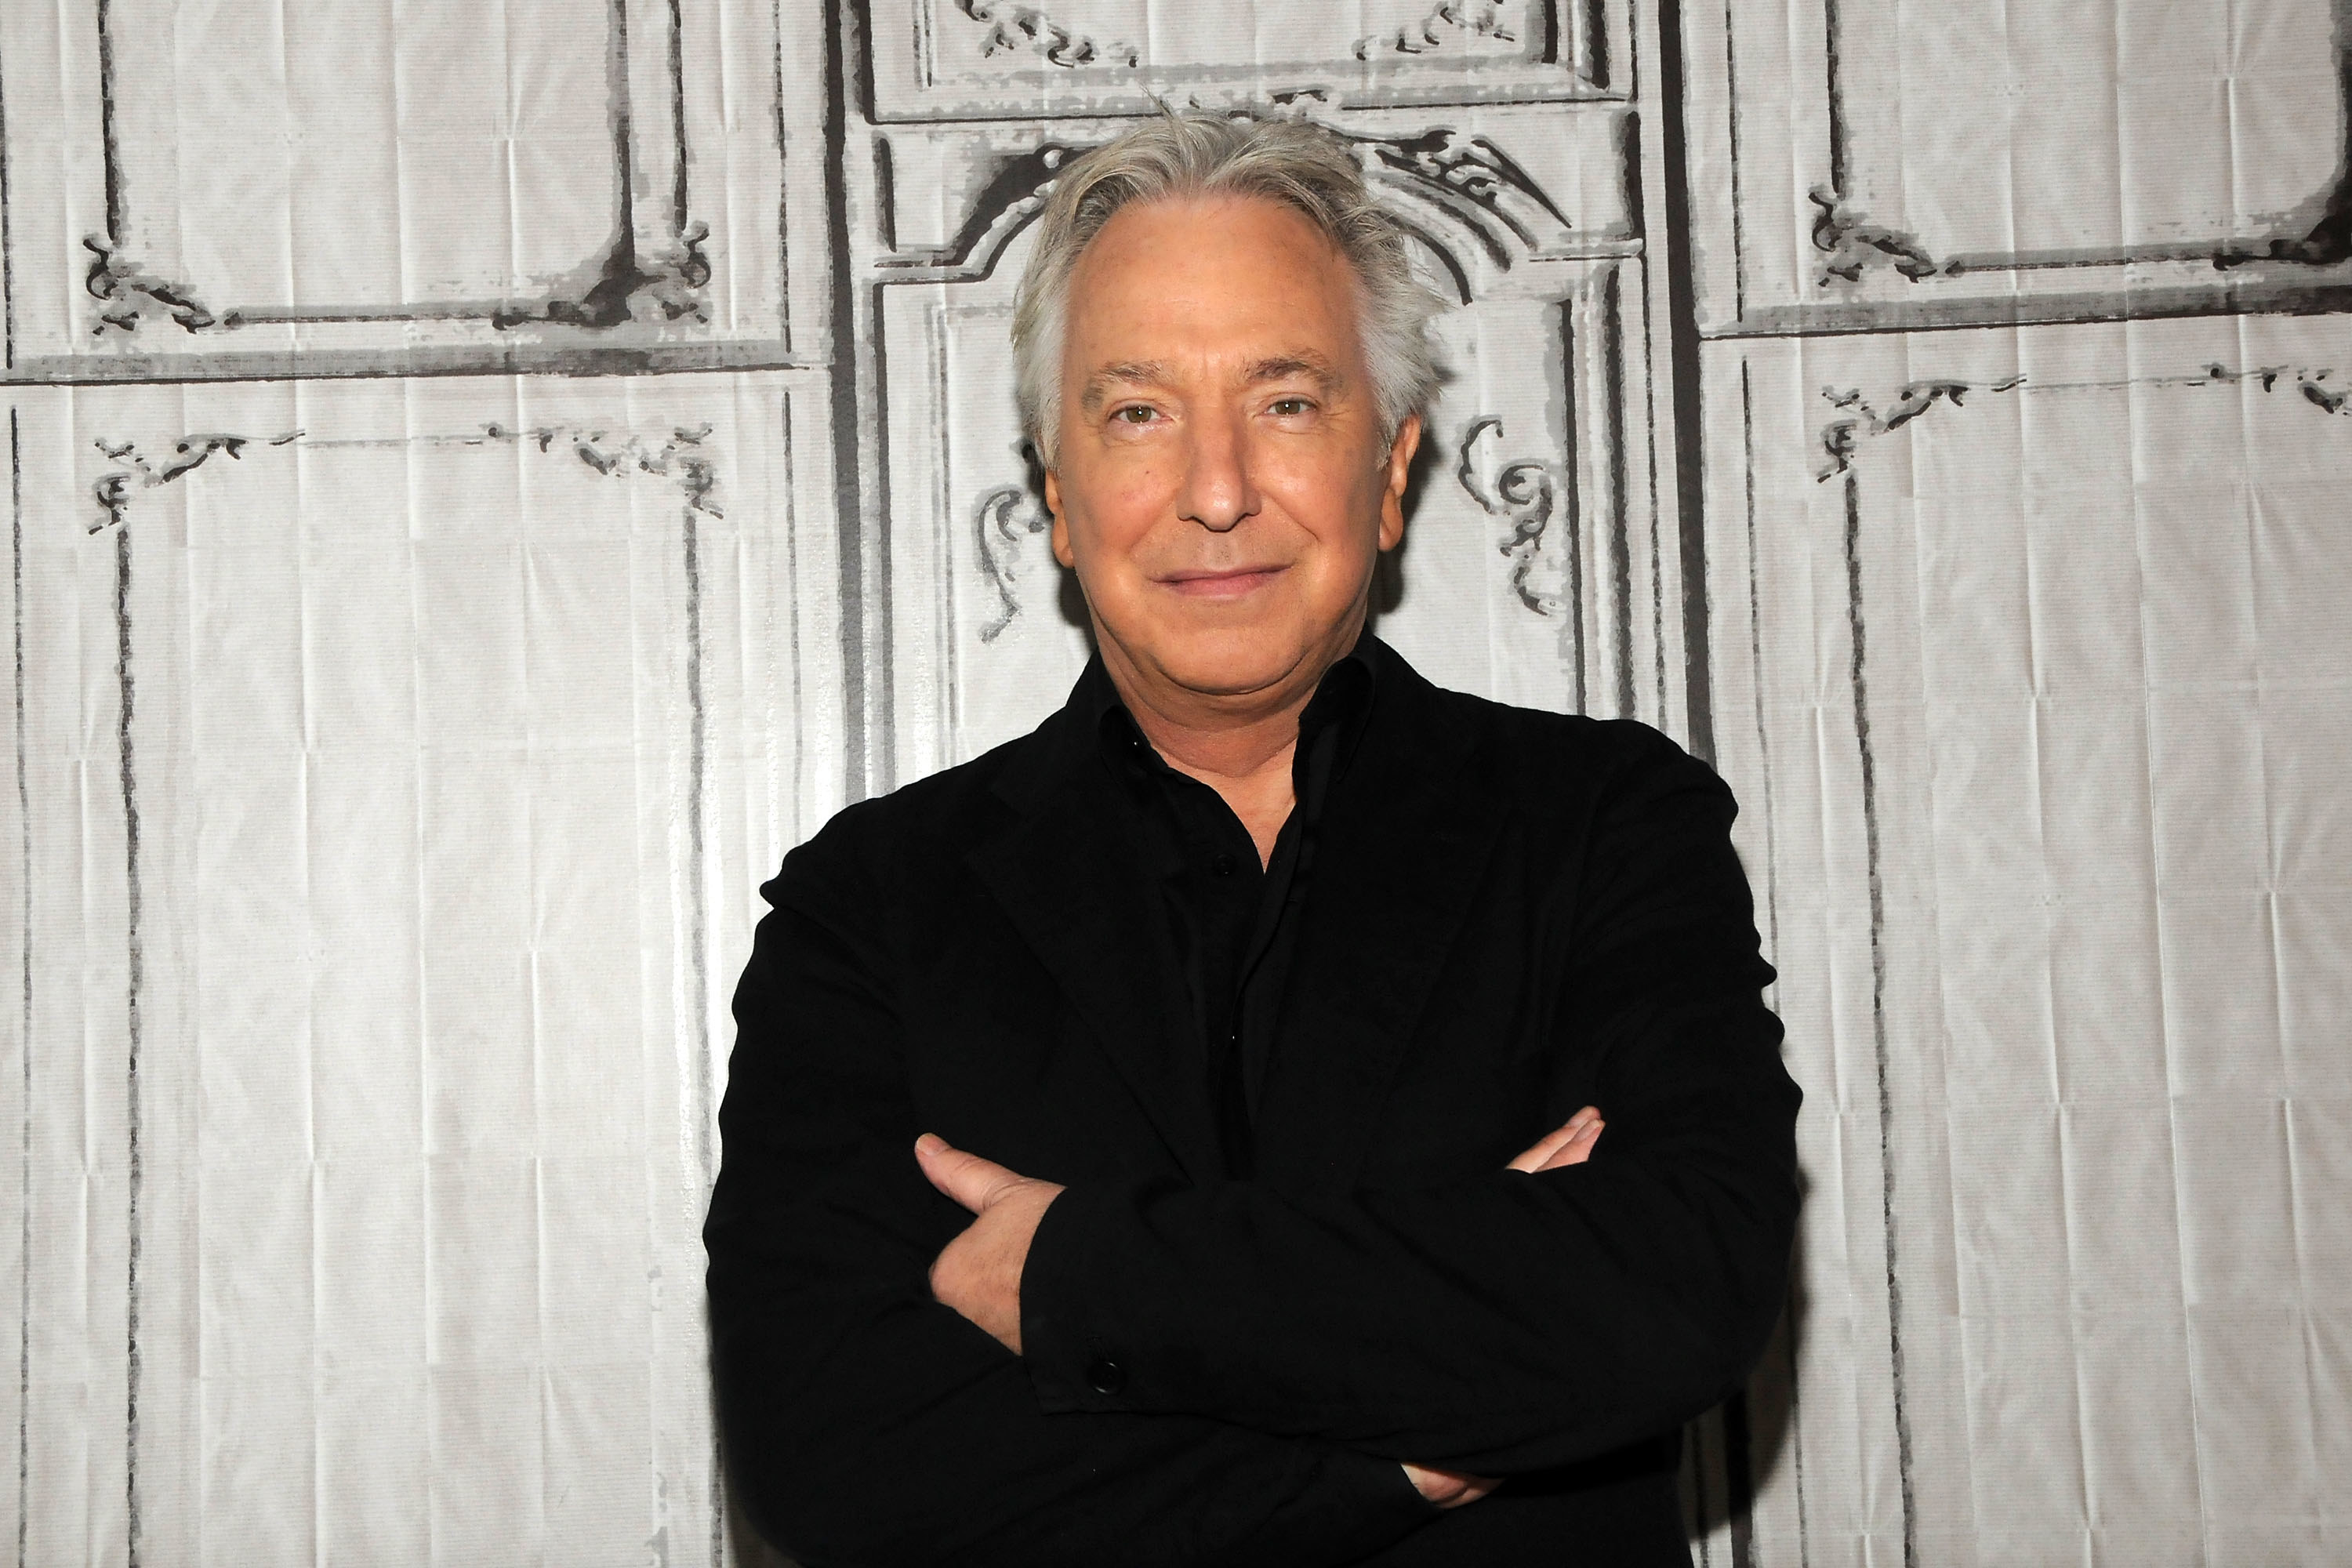 Photo of Alan Rickman with his arms crossed